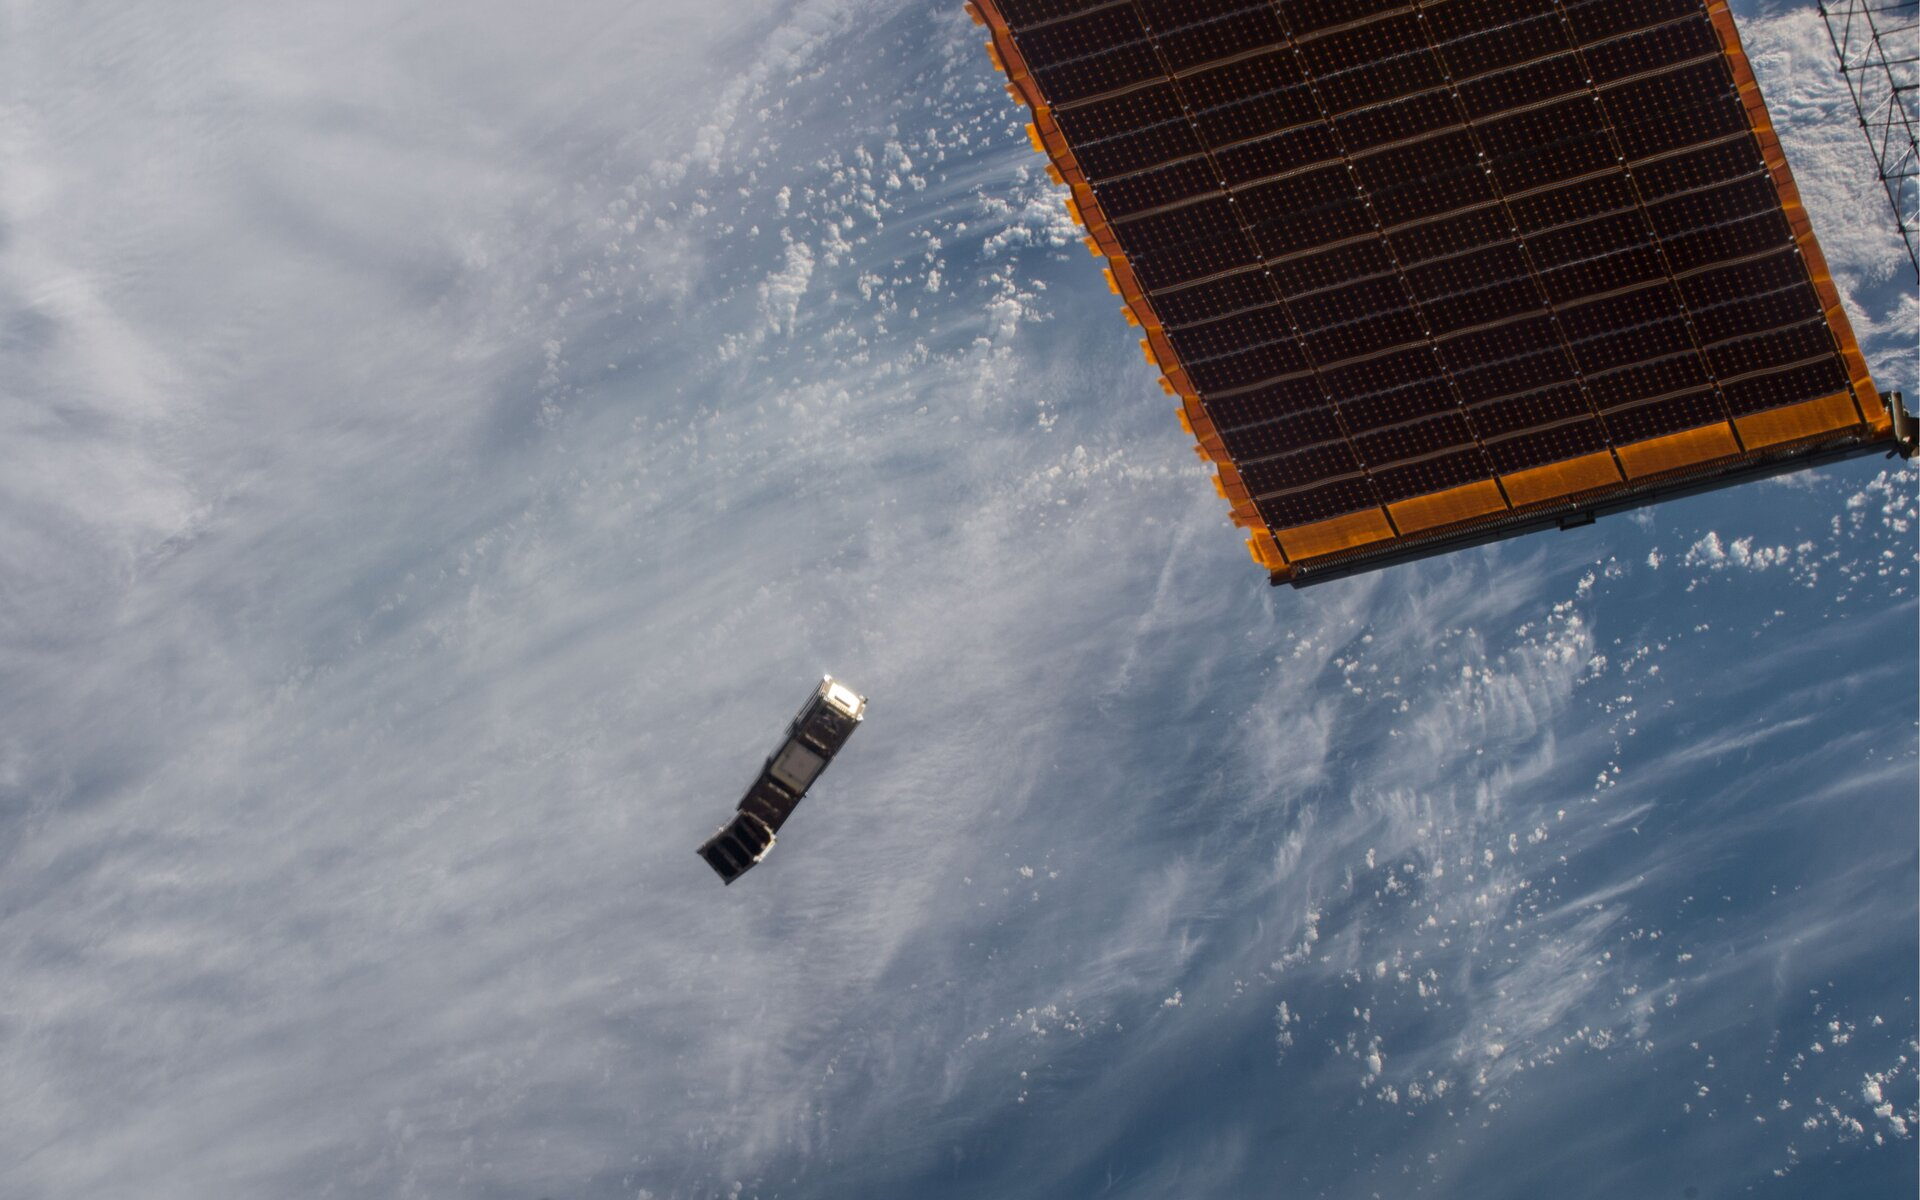 GOMX-3 CubeSat after its deployment from the ISS